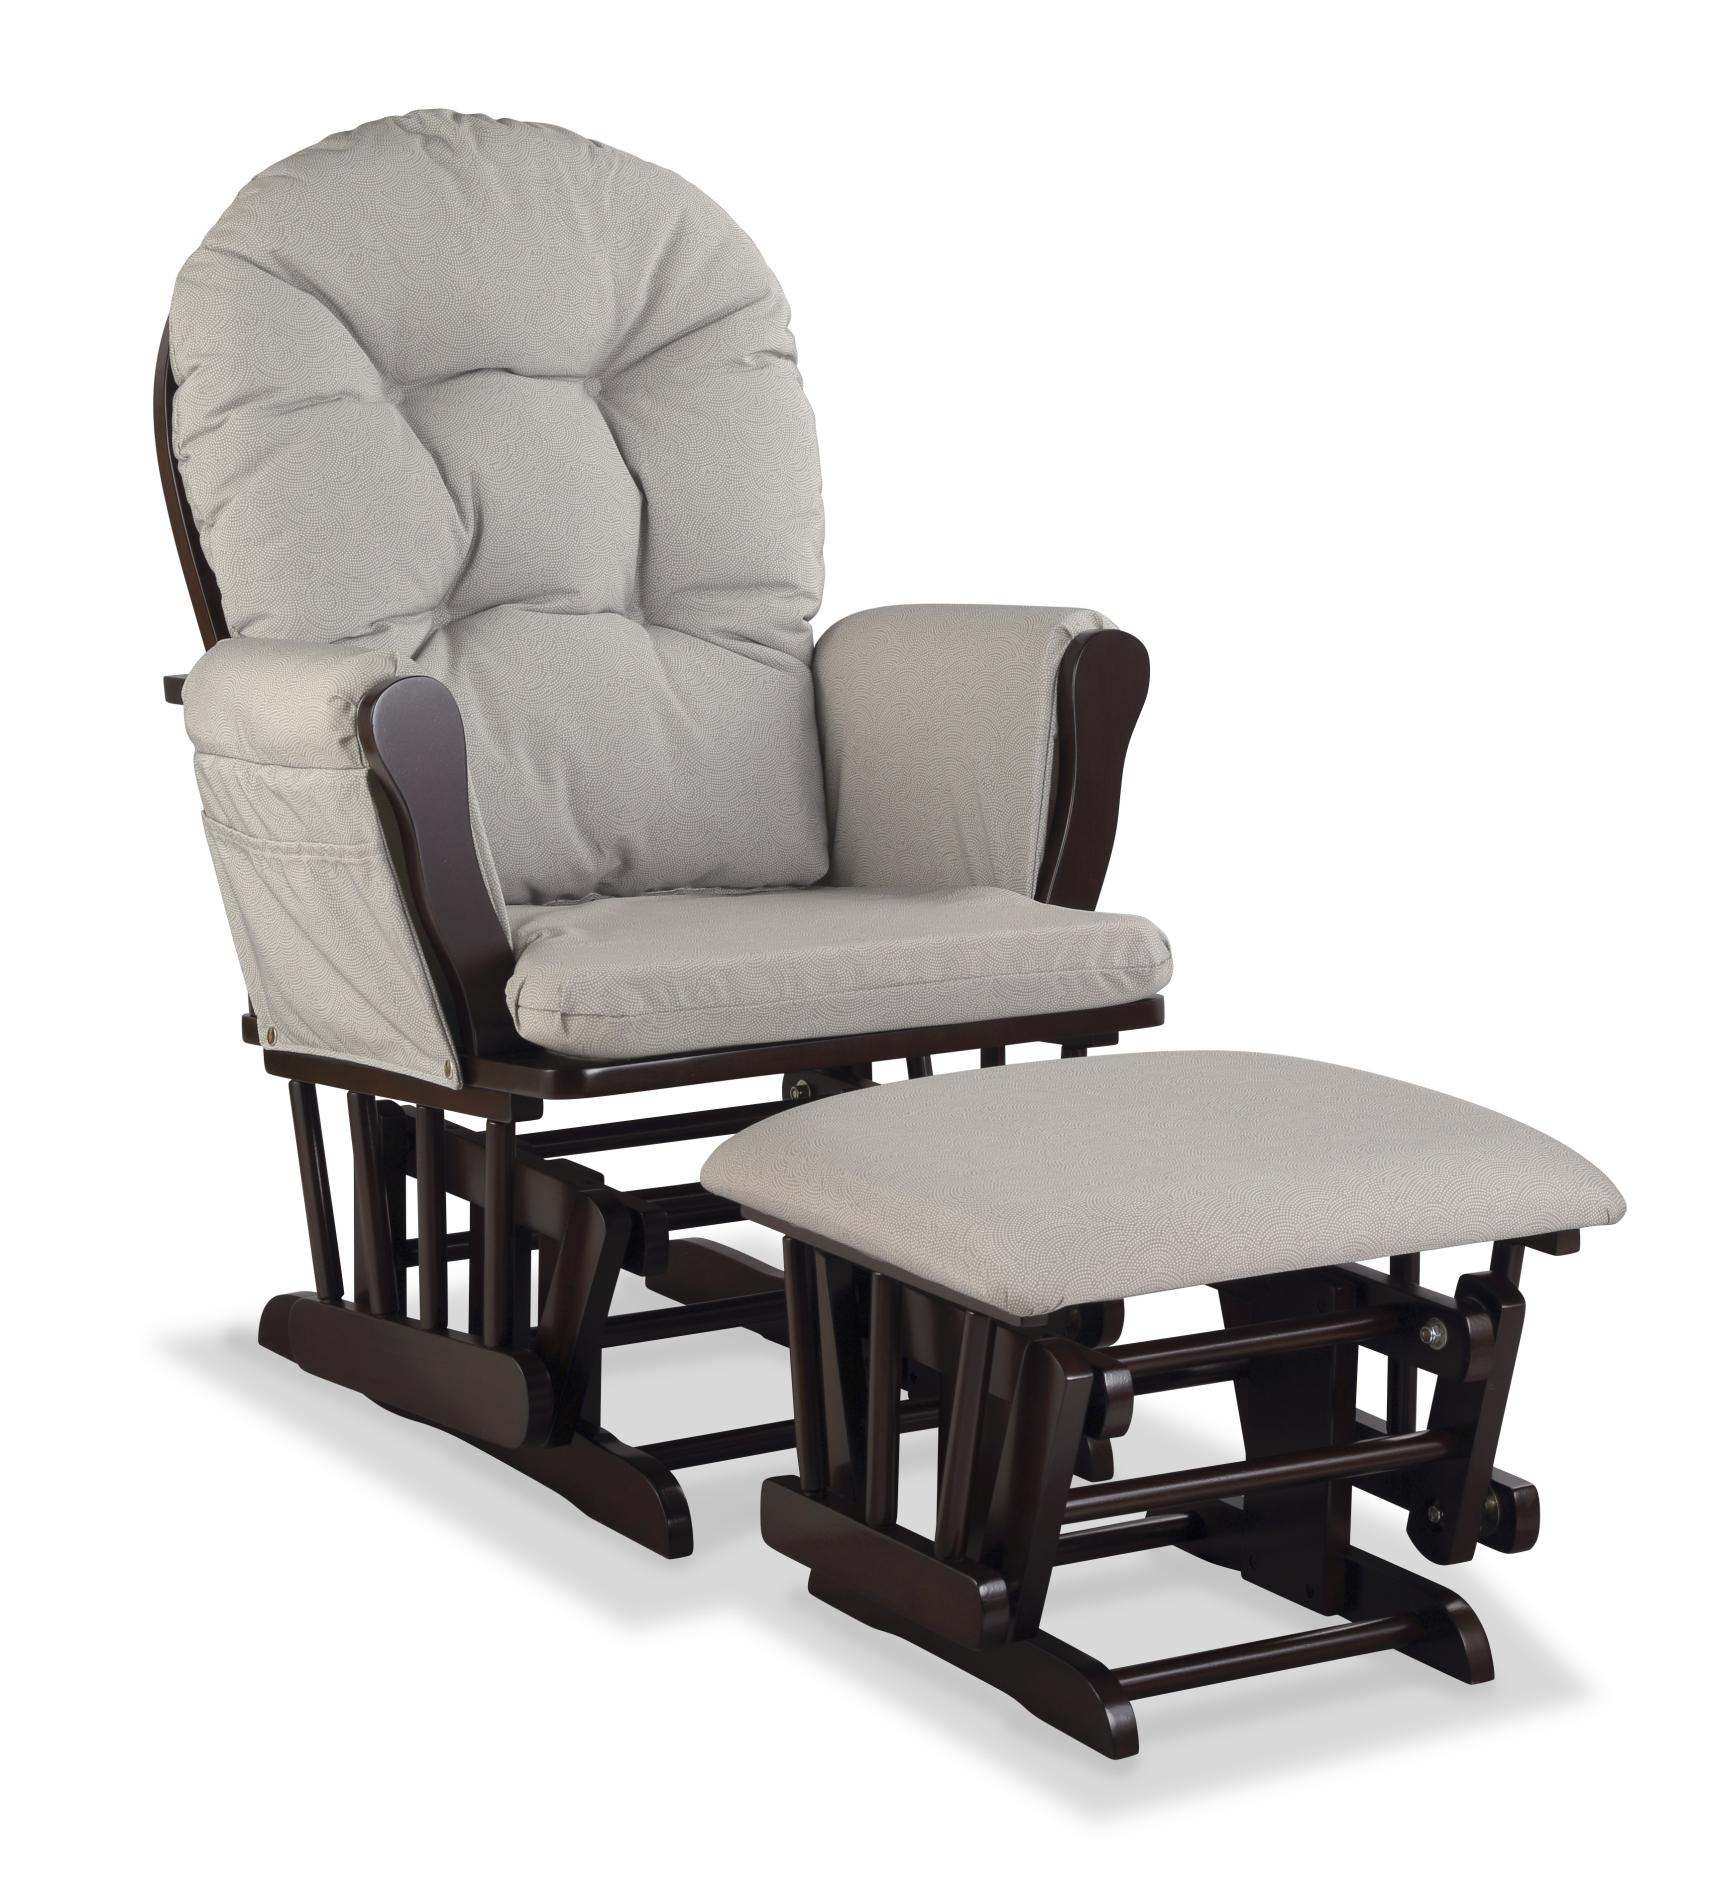 Glider Chairs Graco Nursery Glider Chair And Ottoman